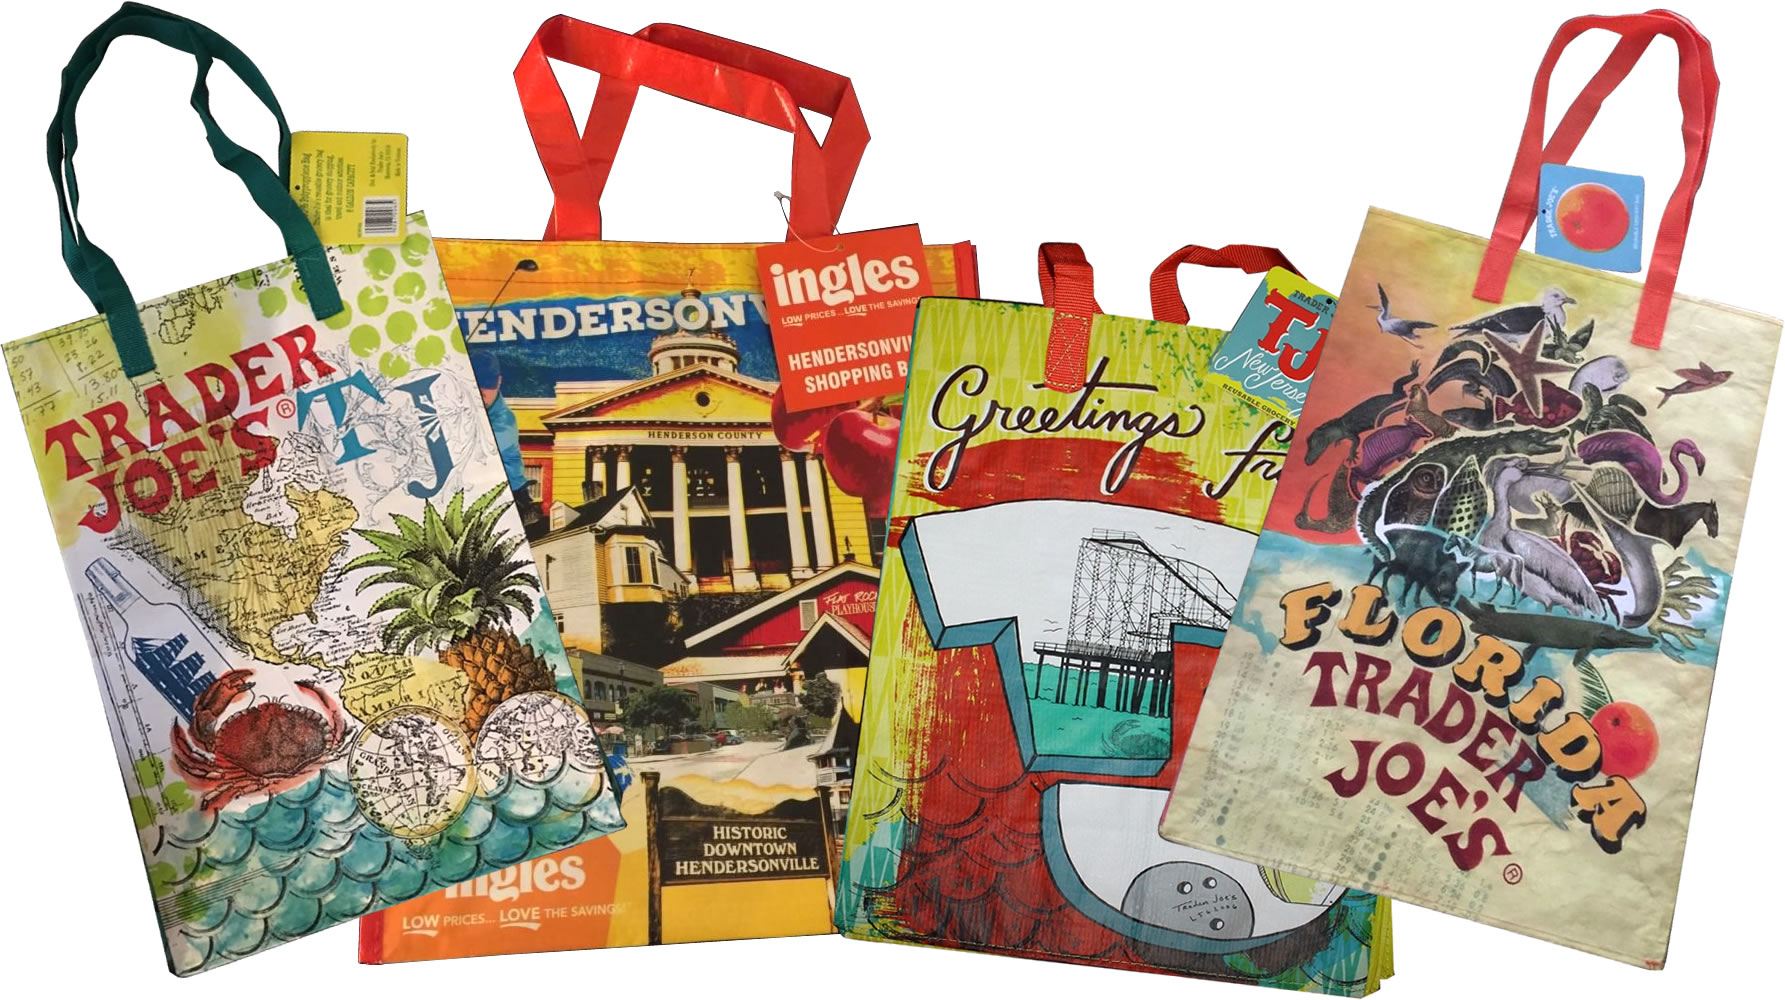 Paper or Plastic? California law now forces customers to pay for throw away shopping bags.